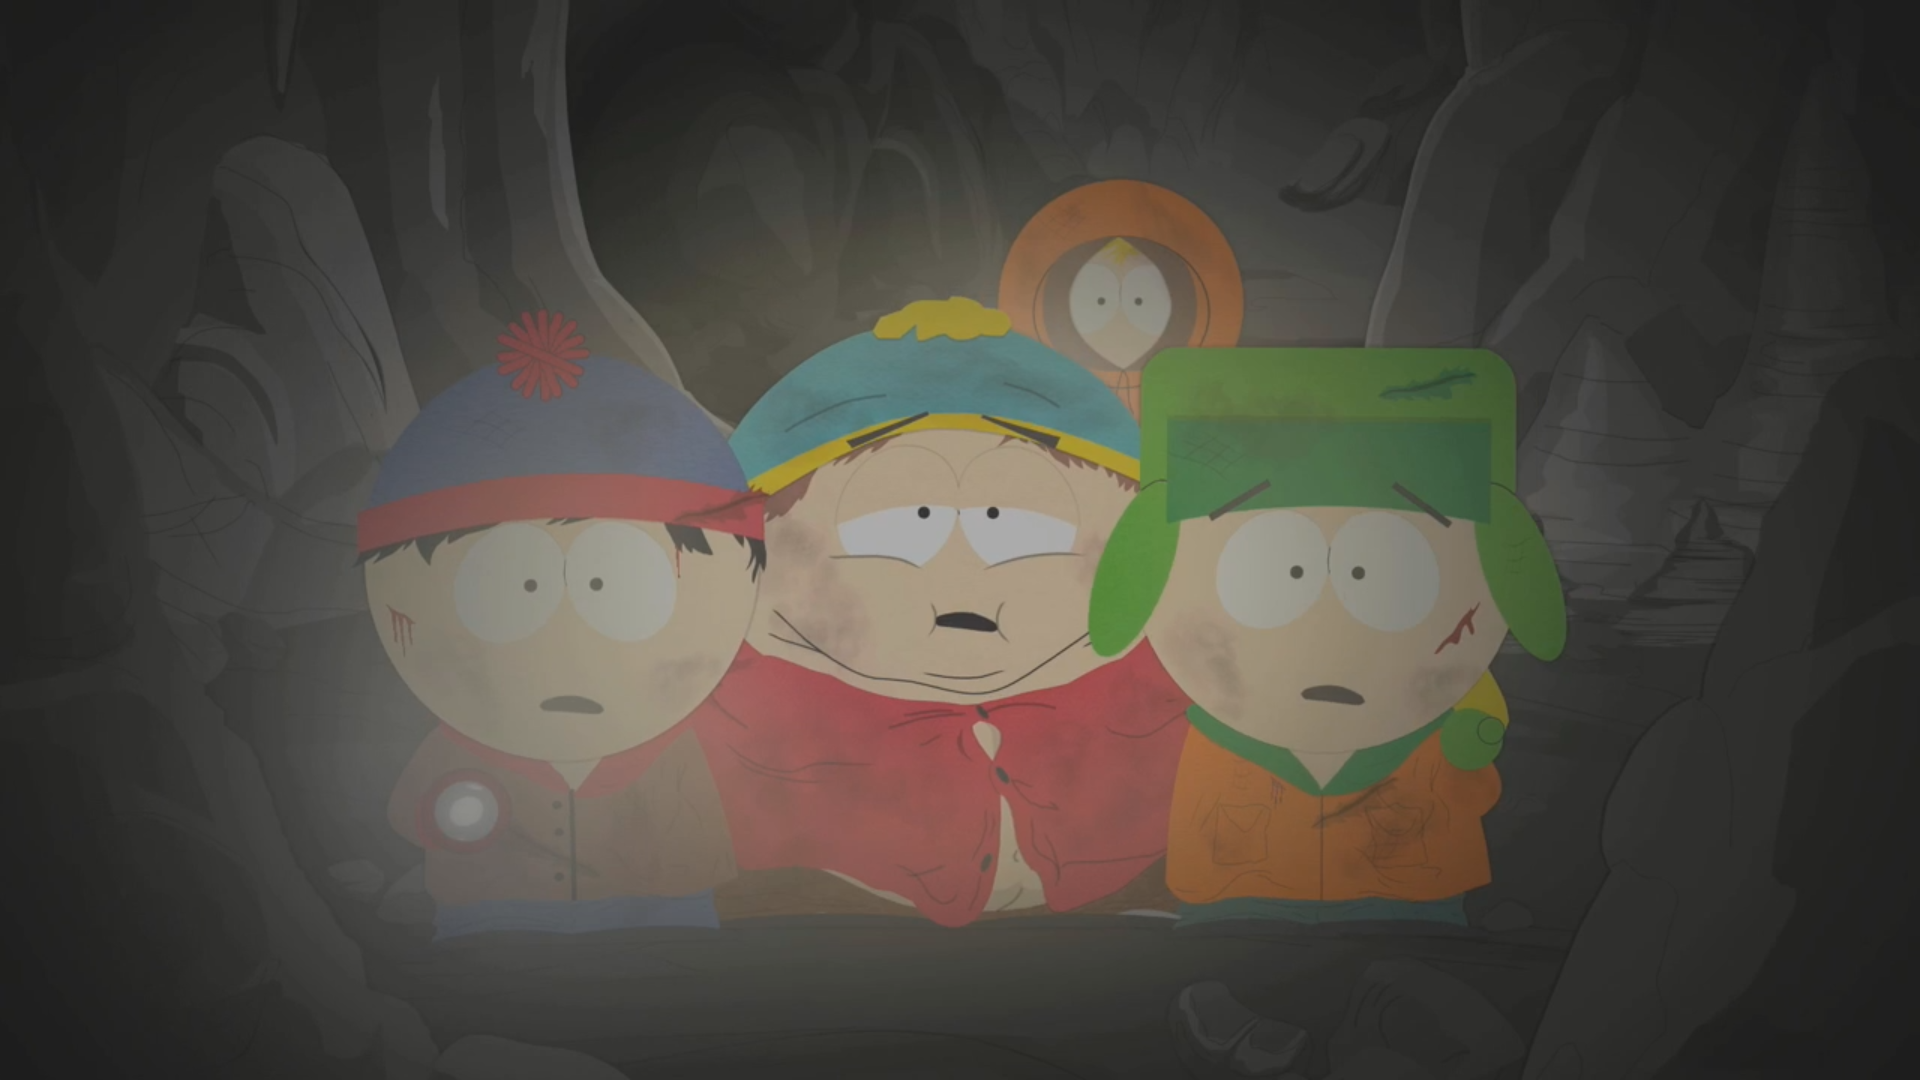 Coders South Park Fan Club Wallpaper Abyss TV Show South Park 499442 1920x1080